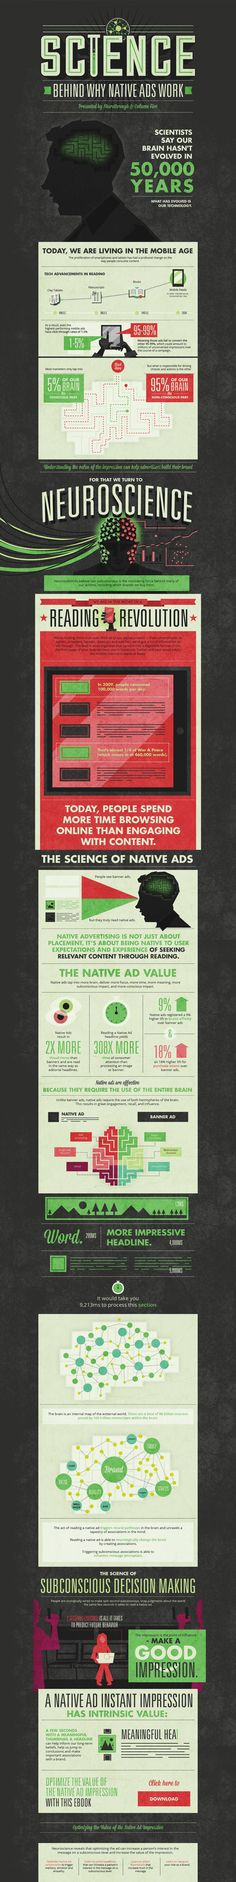 August 5, 2015 // 7:00 AM The Science Behind Why Native Ads Work [Infographic] Written by Jami Oetting | @jamioetting